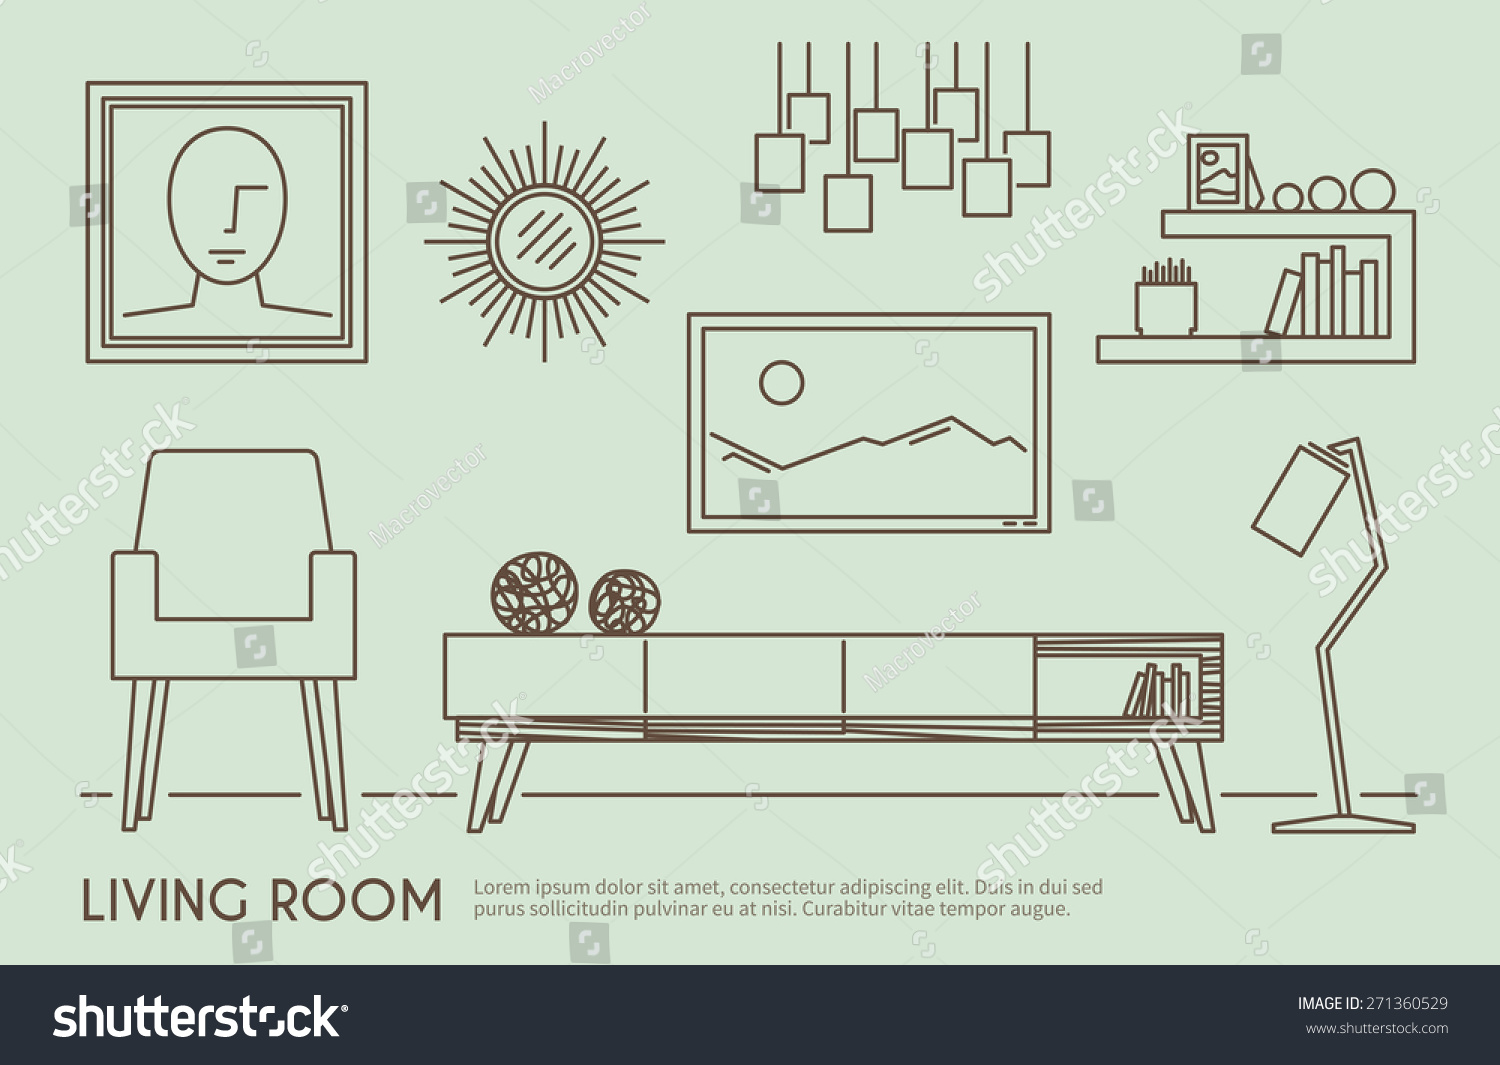 Living room interior design with outline furniture set for Room design vector